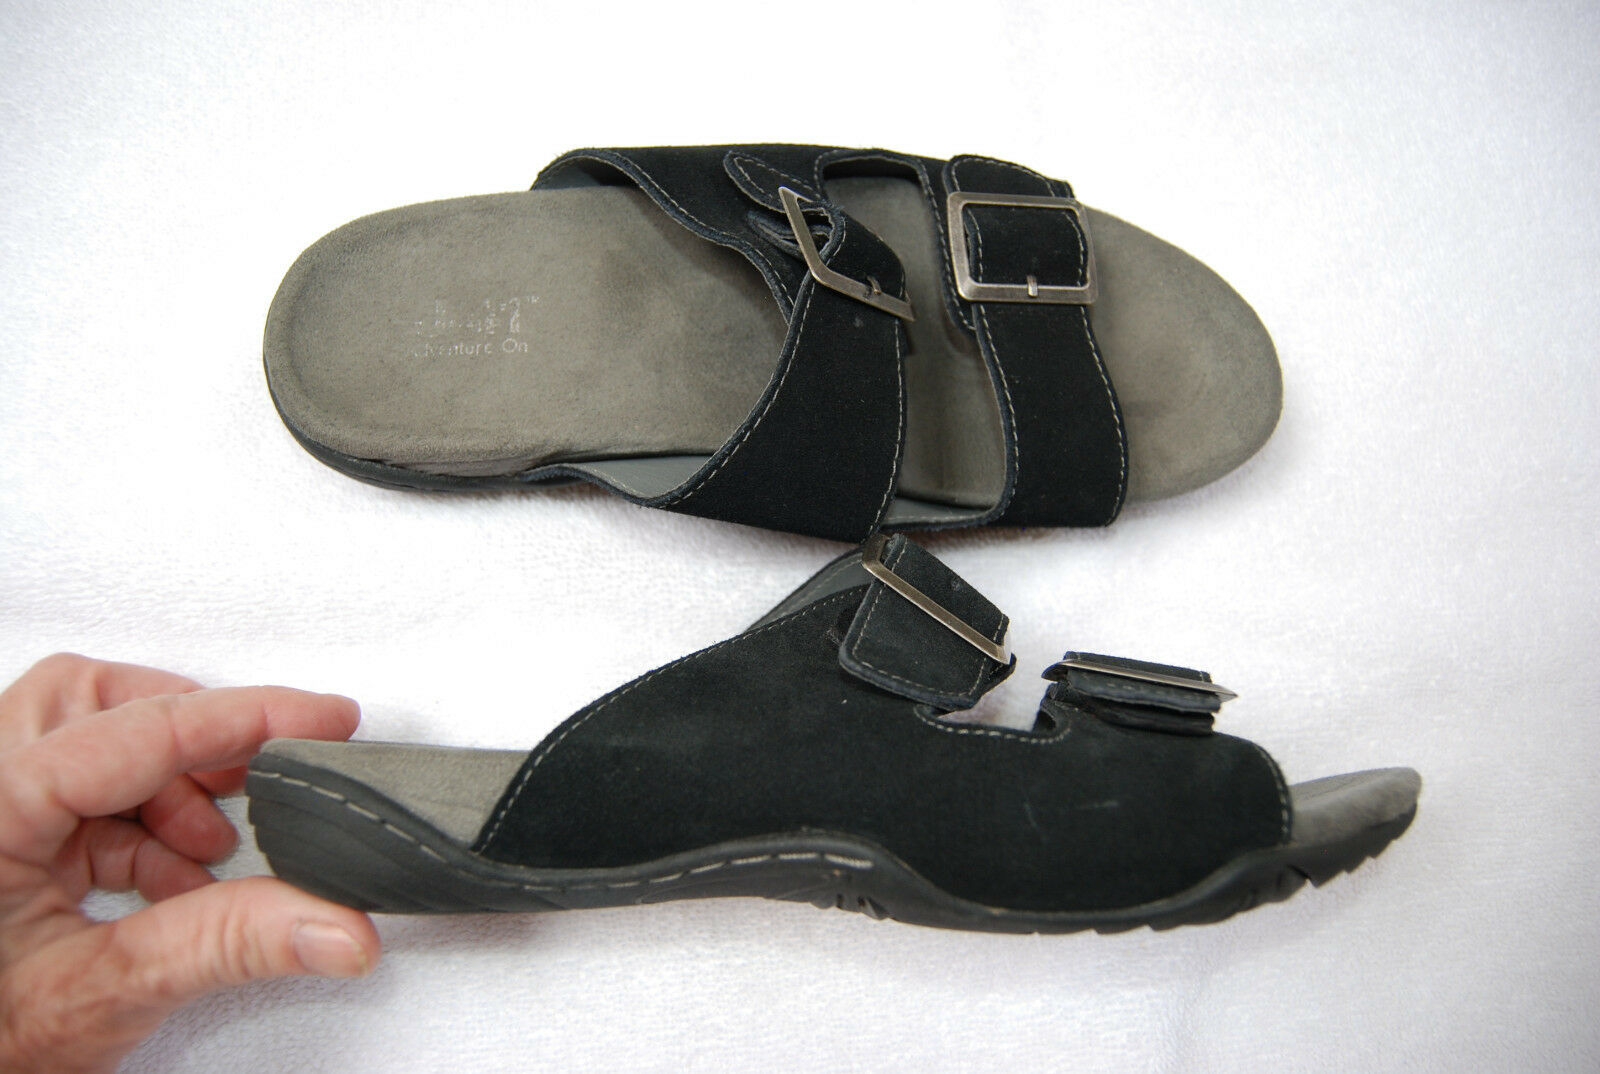 Black Sueded Leather J-41 ADVENTURE Sandals ON Double Strap w/Buckles Sandals ADVENTURE 8 M 491787